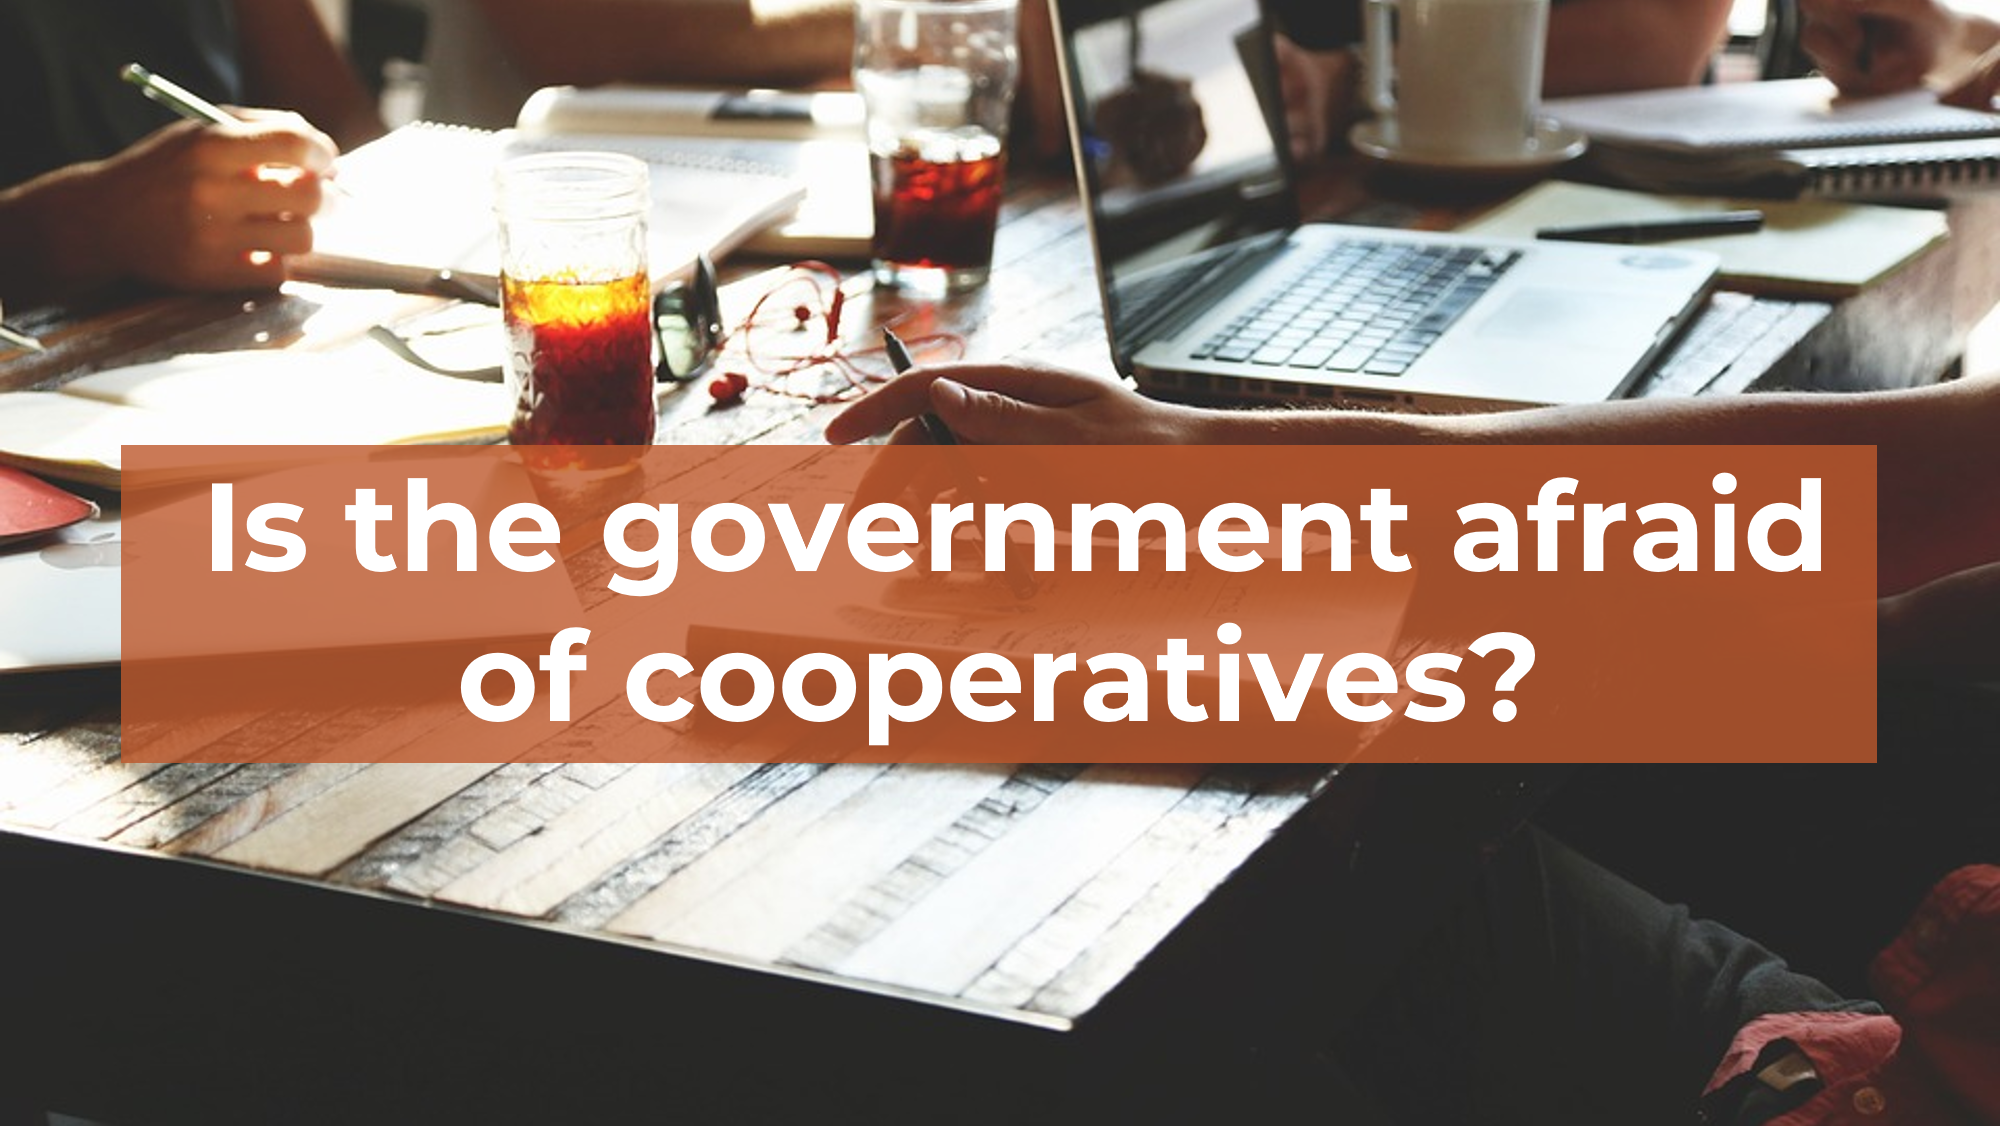 Is the government afraid of cooperatives?